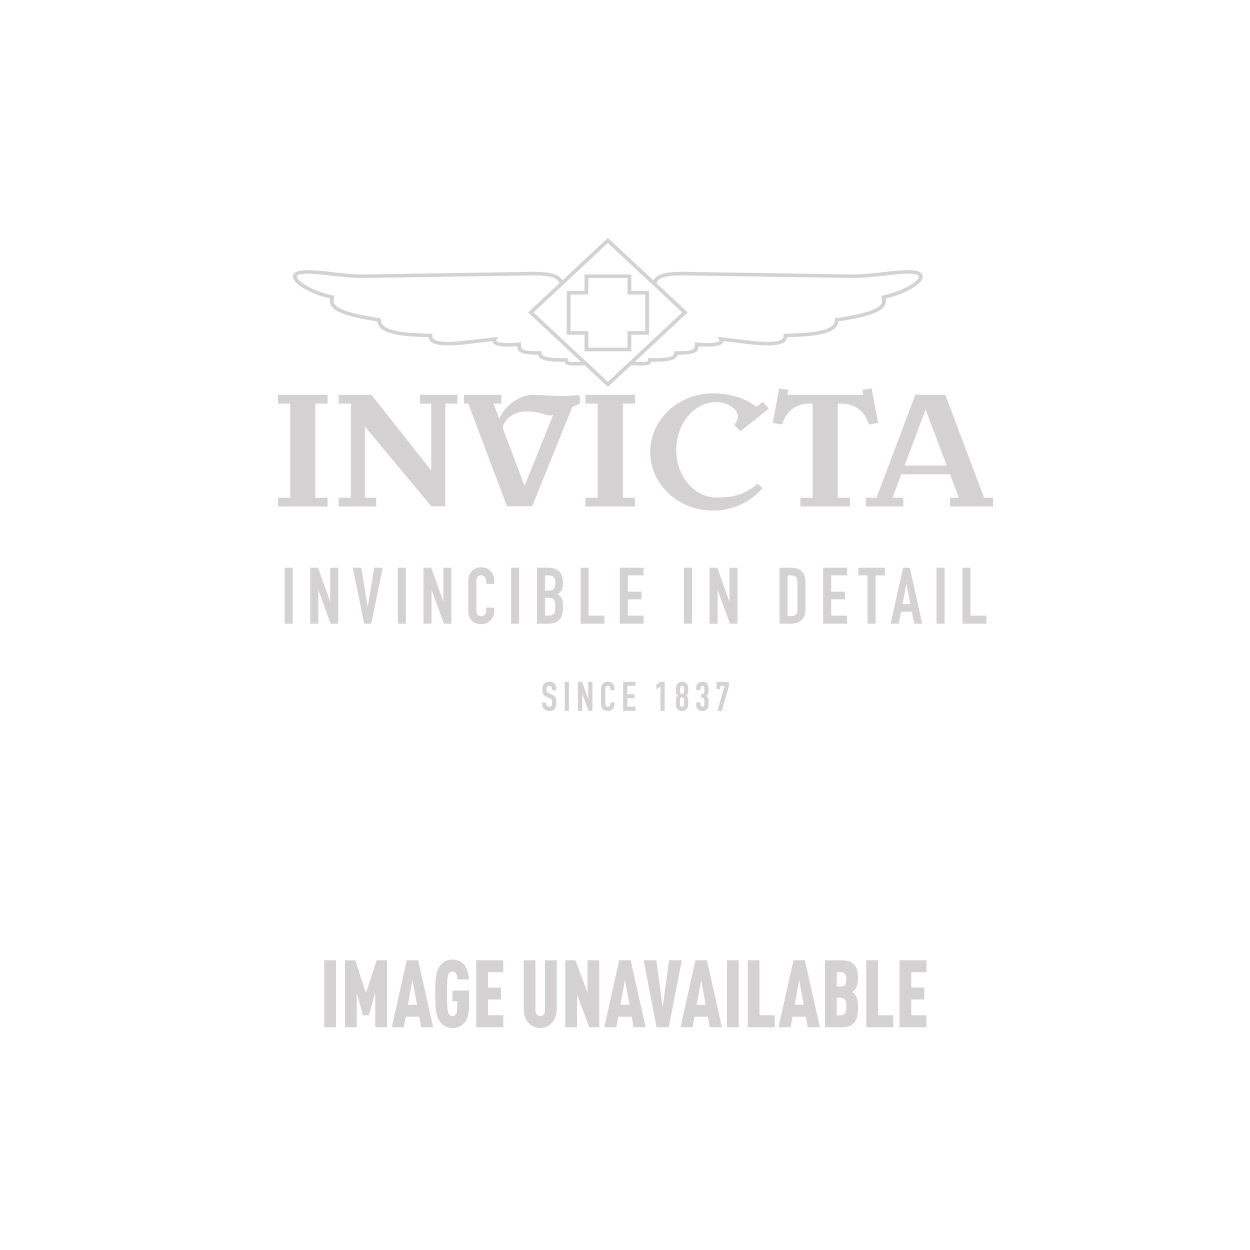 Invicta 43cm Women's Necklaces in Rose Gold - Model J0292